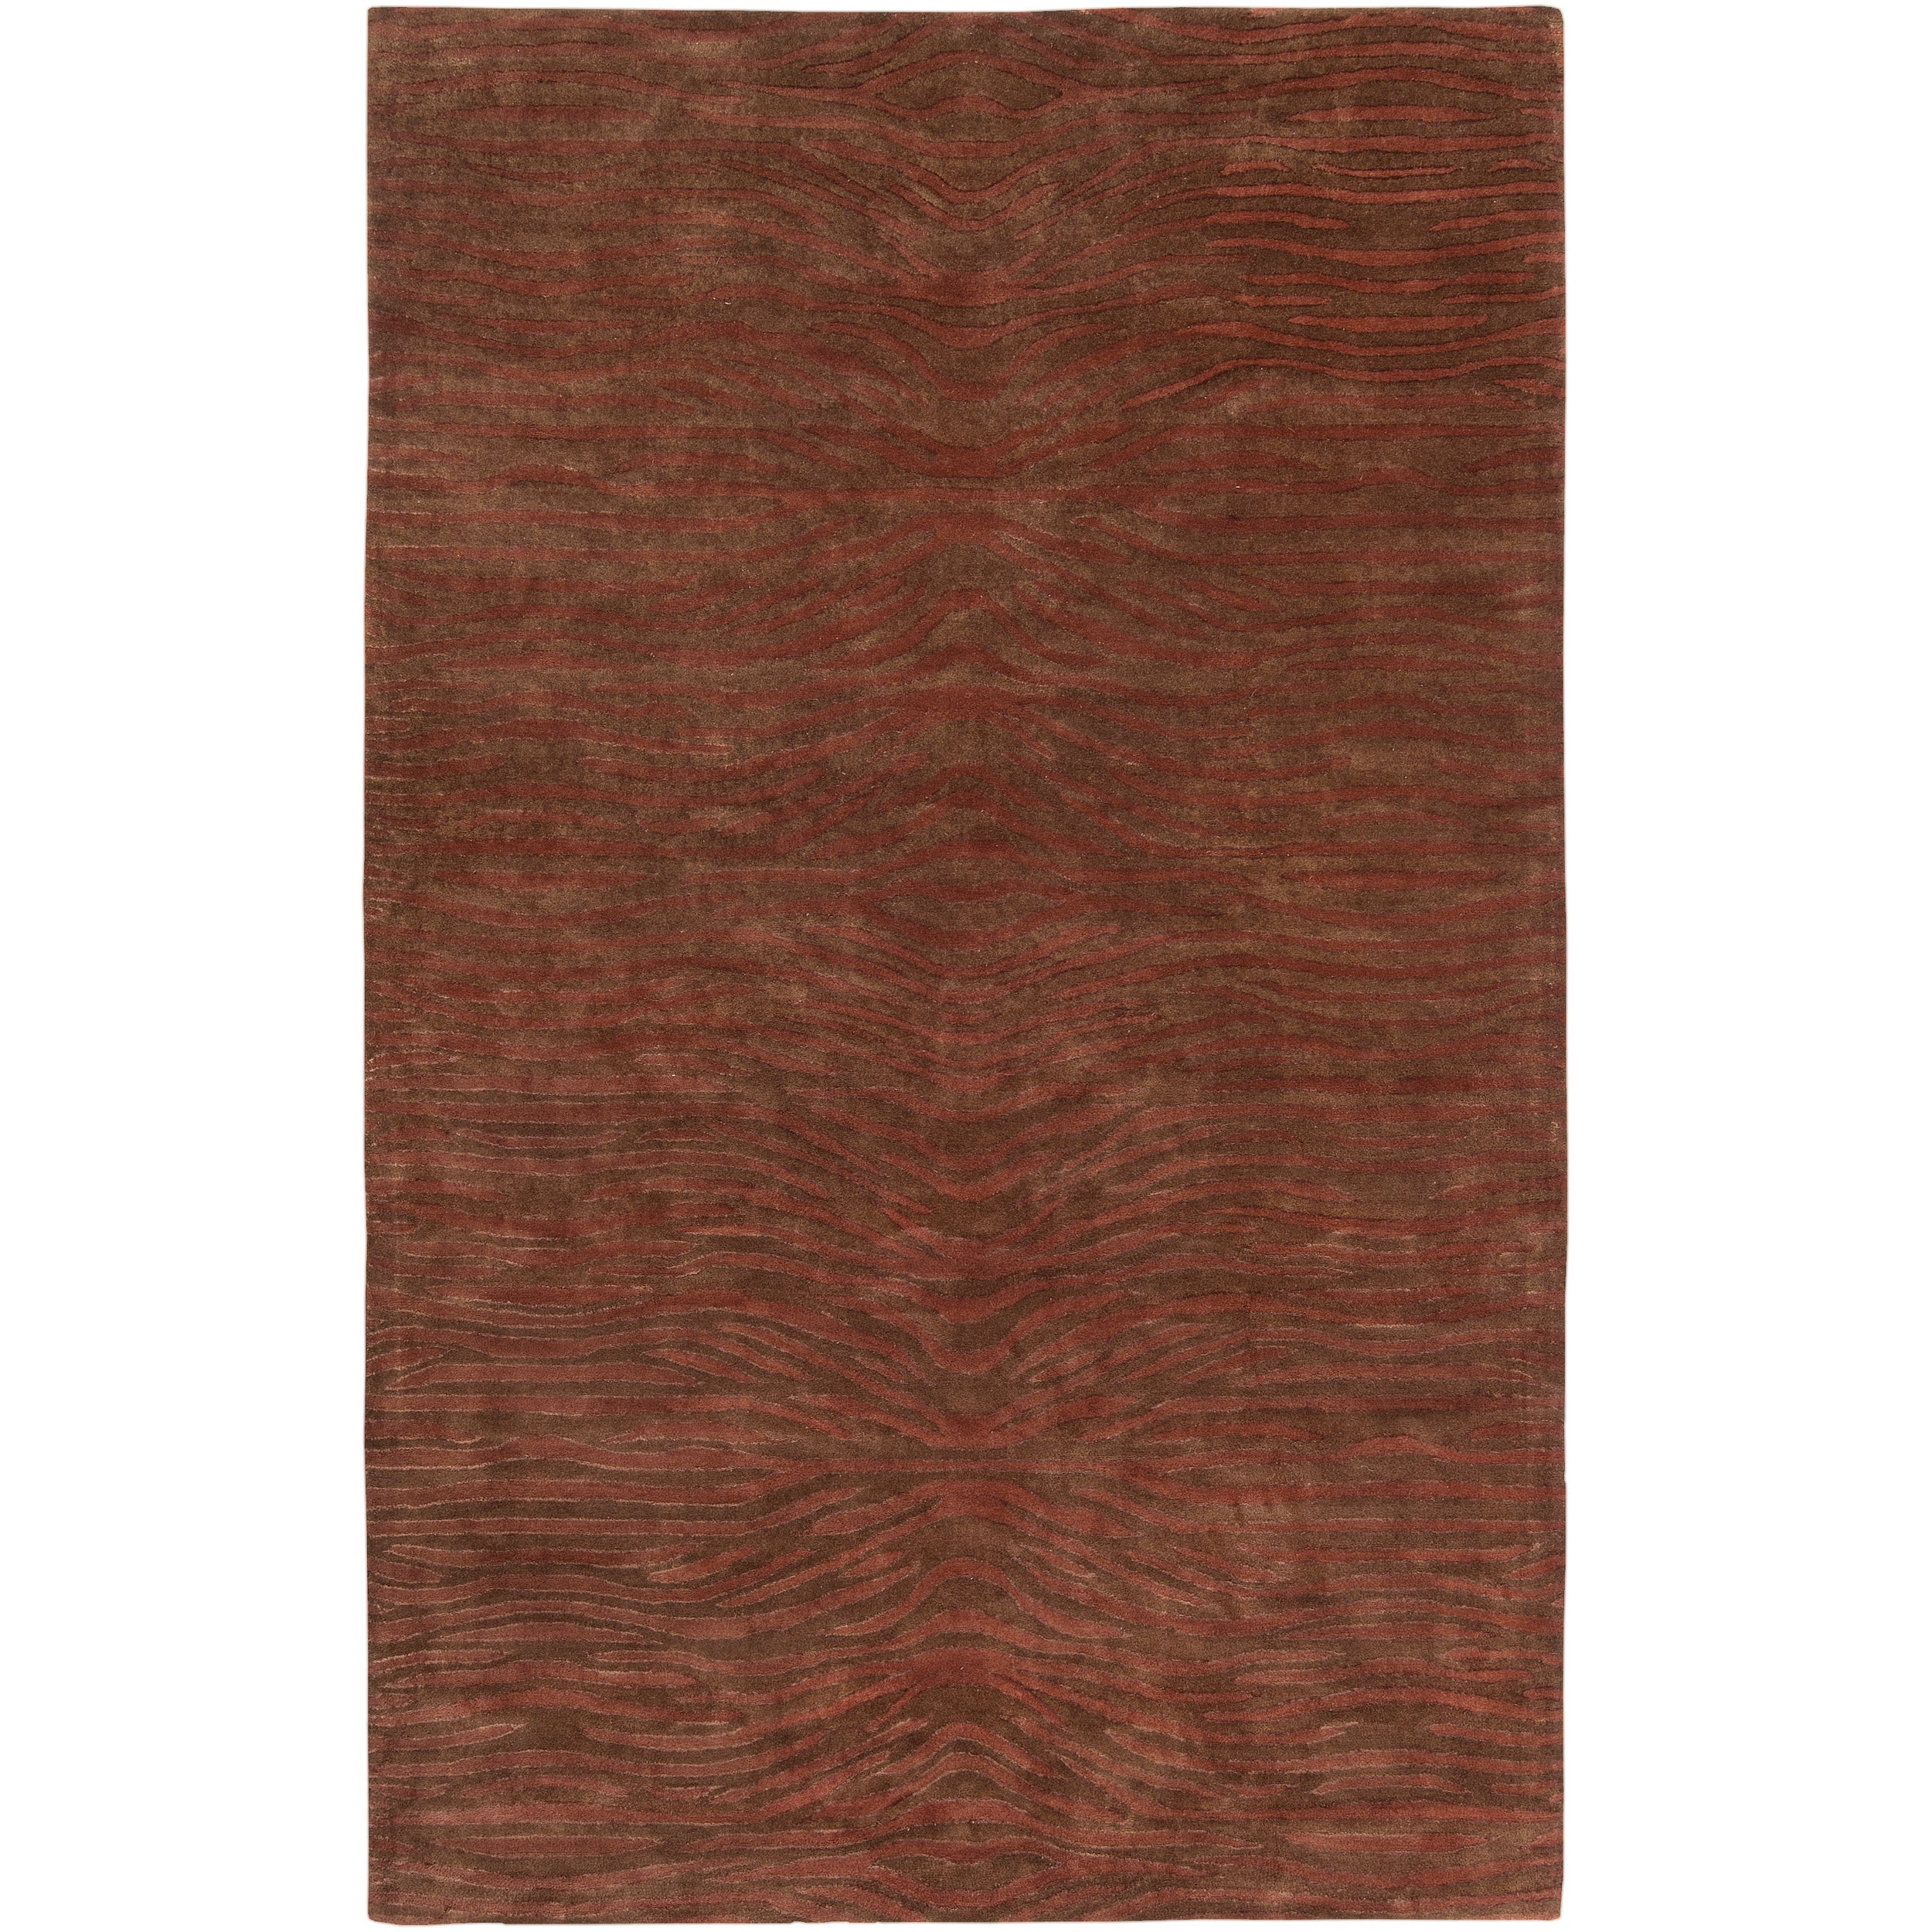 Hand-tufted Ipswich New Zealand Wool/ Viscose Rug (8' x 11')